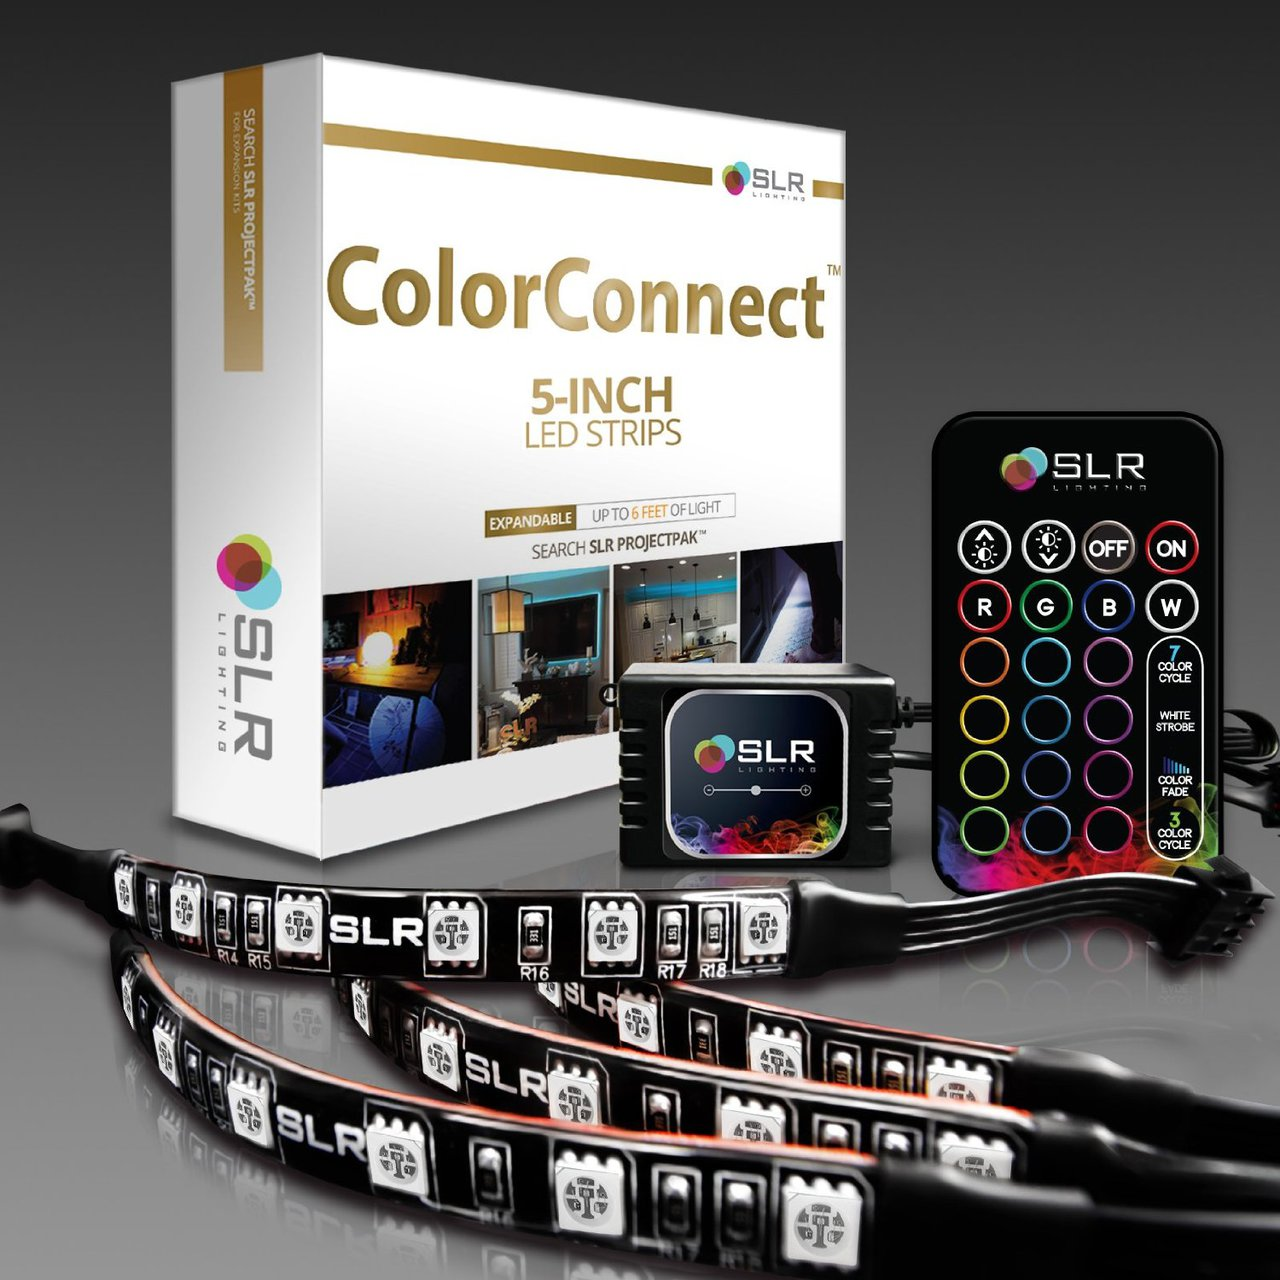 Colorconnect light kit with 5 inch led strips simple living redefined colorconnect light kit with 5 inch led strips aloadofball Images